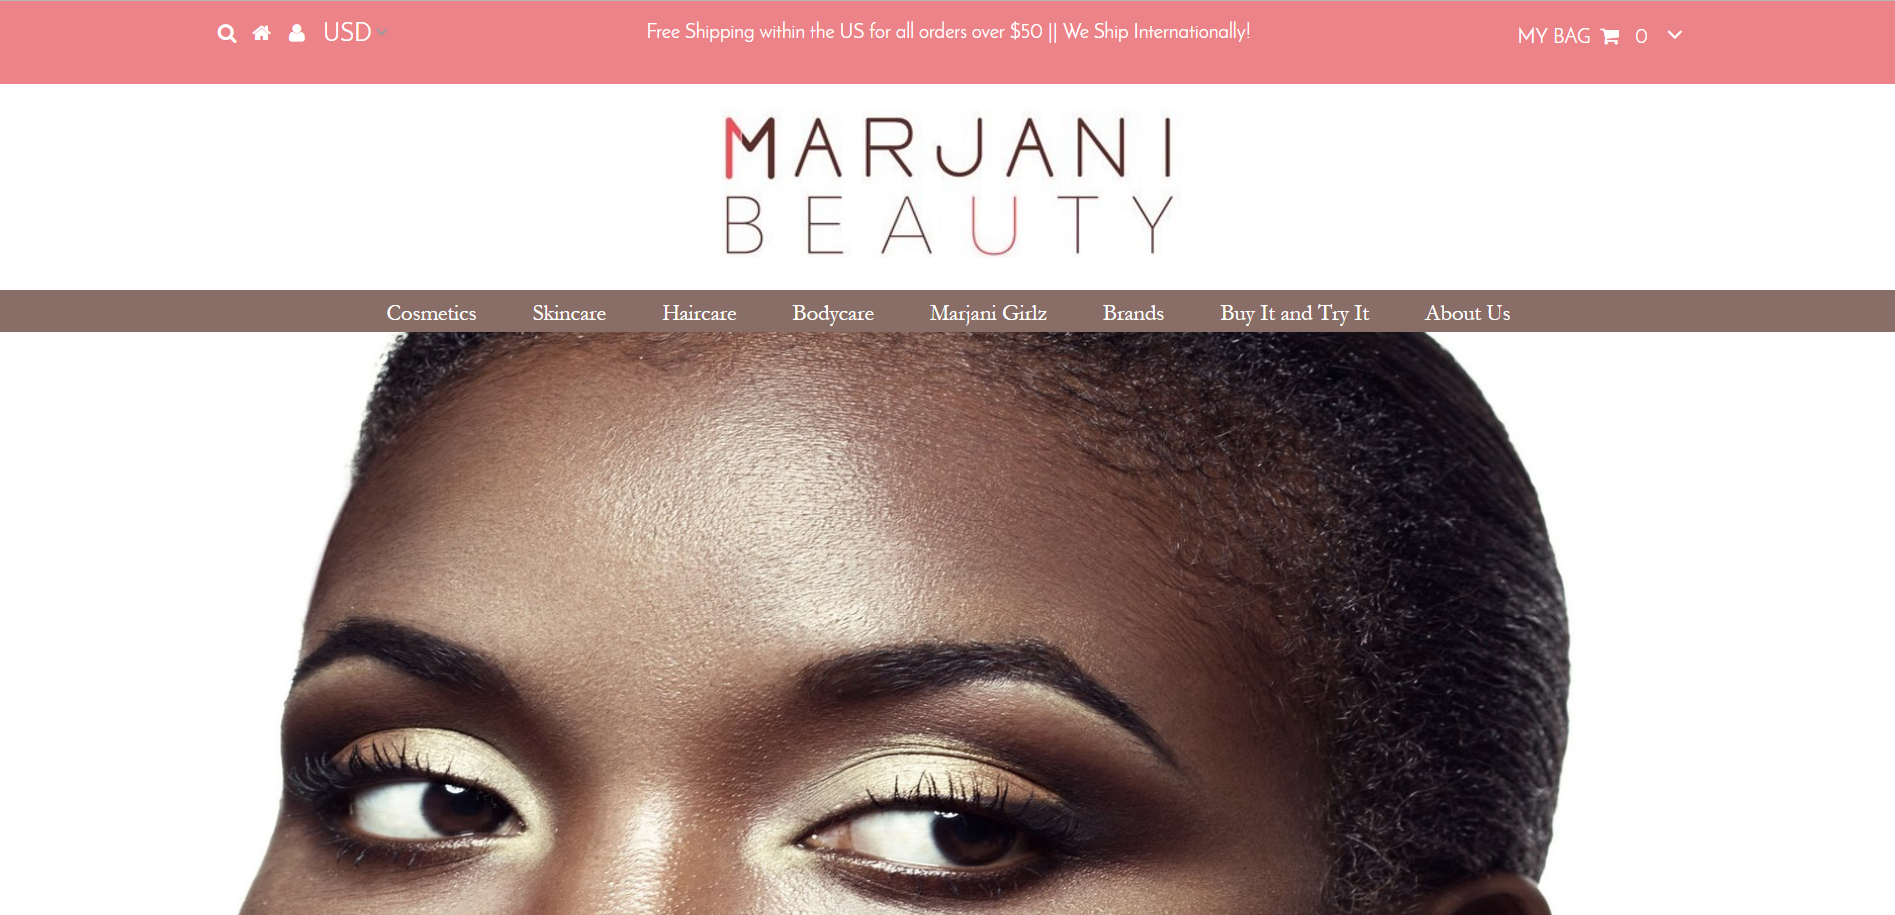 An E-Commerce Beauty Website Brings Diversity to the Industry